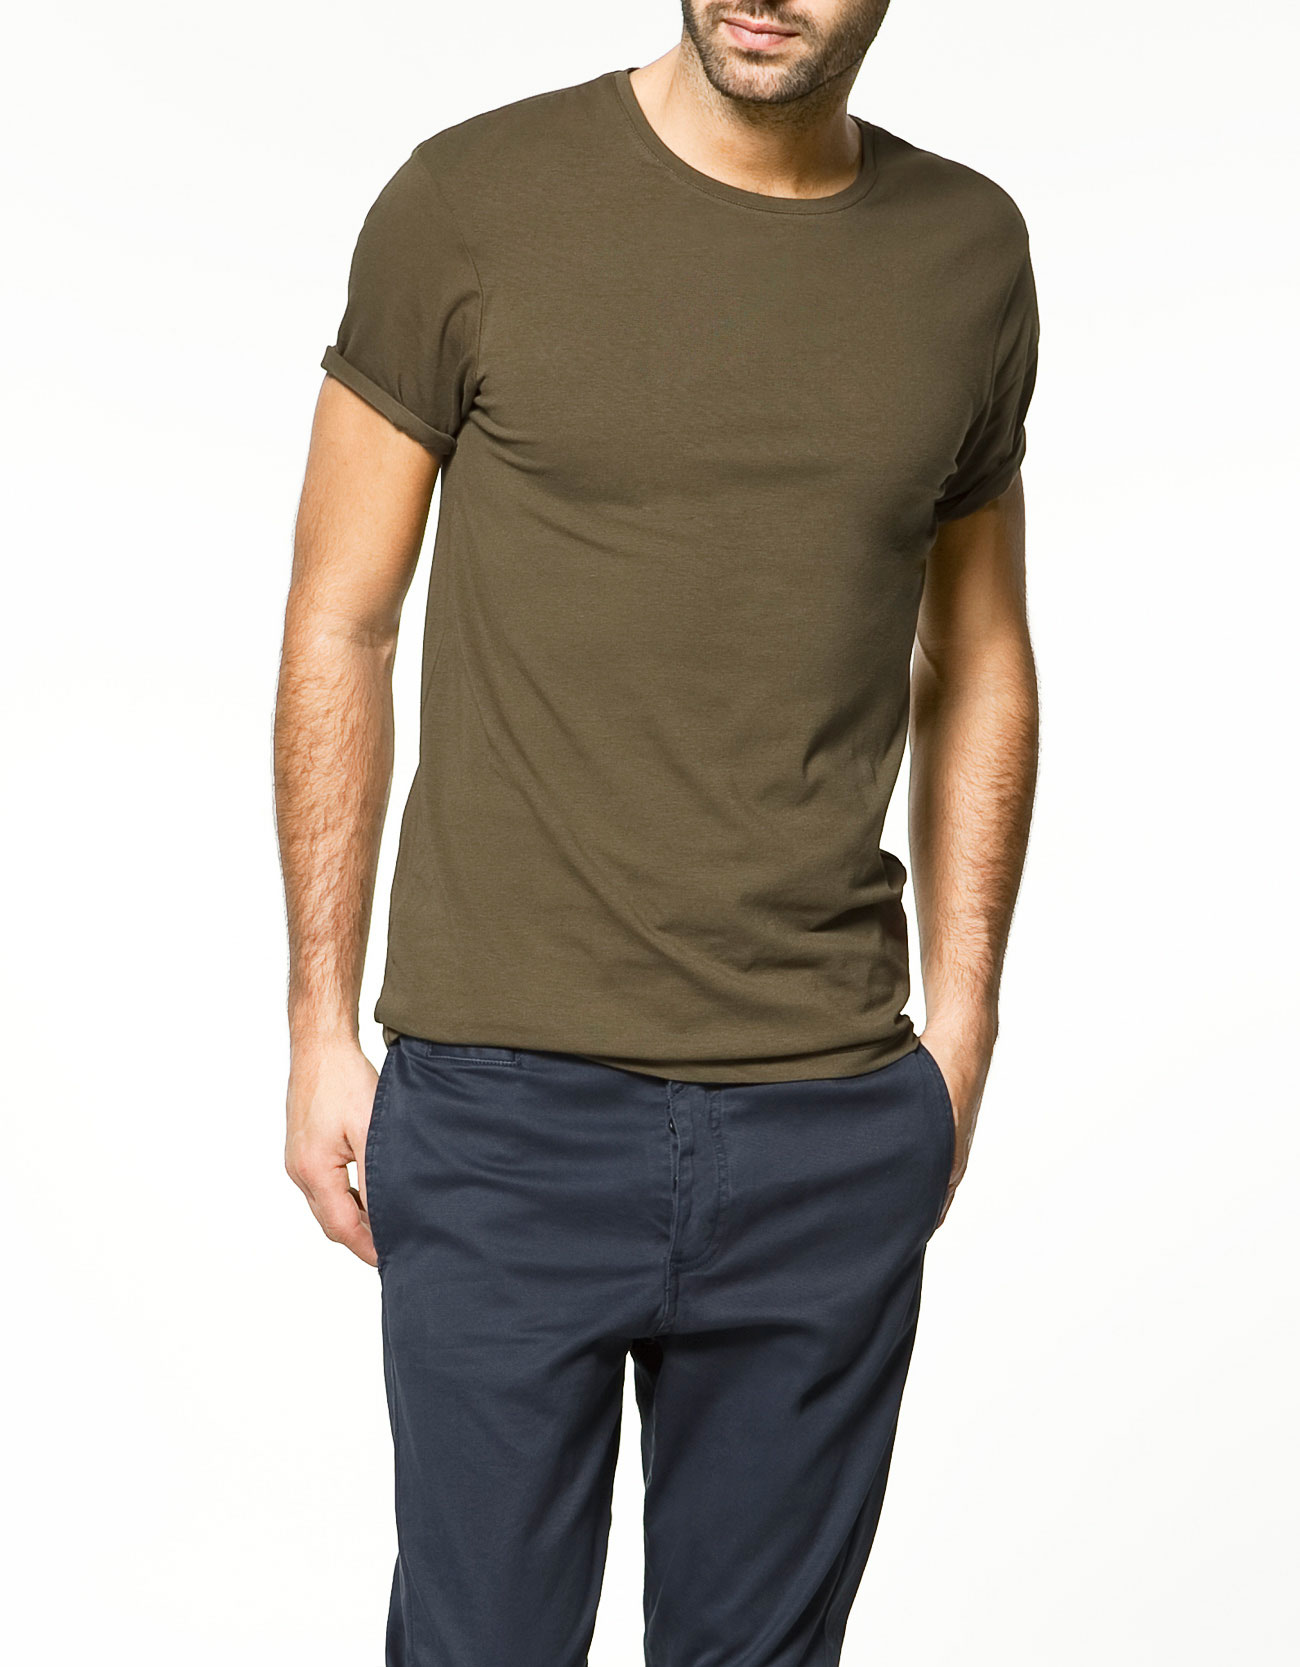 Zara slim fit t shirt in khaki for men lyst Fitness shirts for men